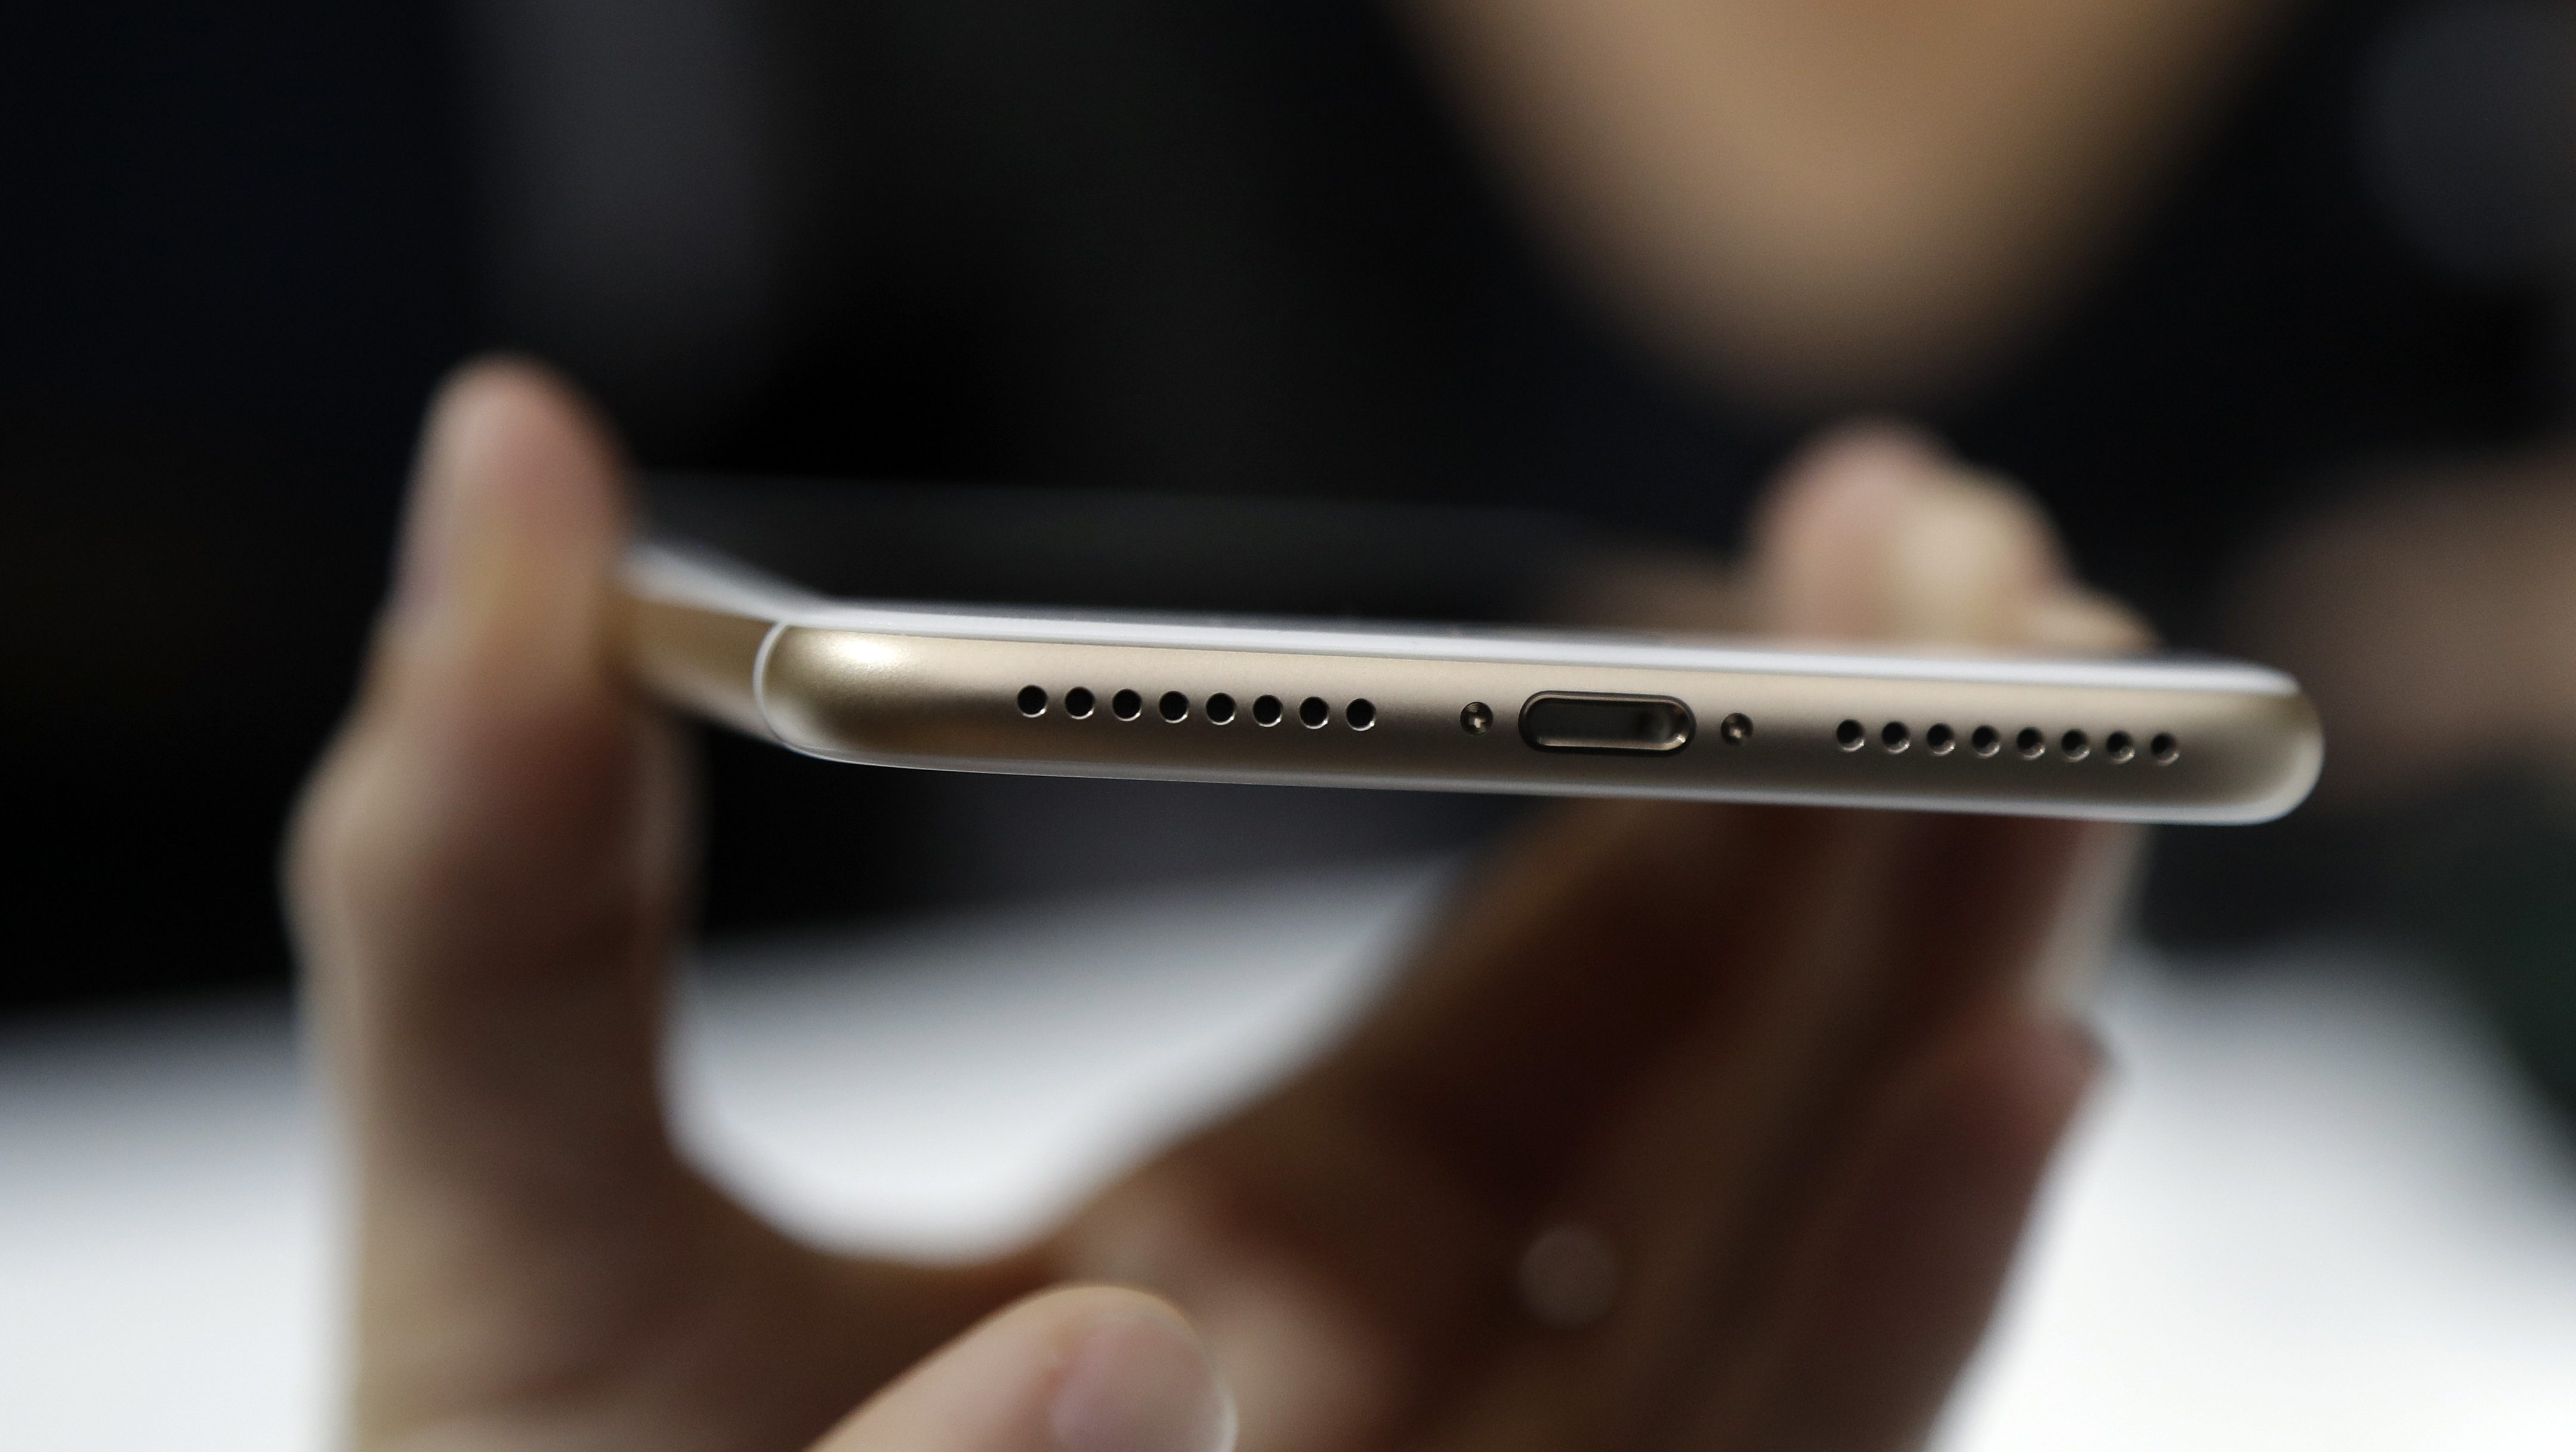 In this Wednesday, Sept. 7, 2016, photo, the lightning port of an iPhone 7 is shown during an event to announce new Apple products, in San Francisco. The new iPhones are better, even when considering that the most dramatic change is what got taken away: the traditional headphone jack. Without a traditional headphone jack, wired headphones plug into the Lightning port normally used for charging. (AP Photo/Marcio Jose Sanchez)